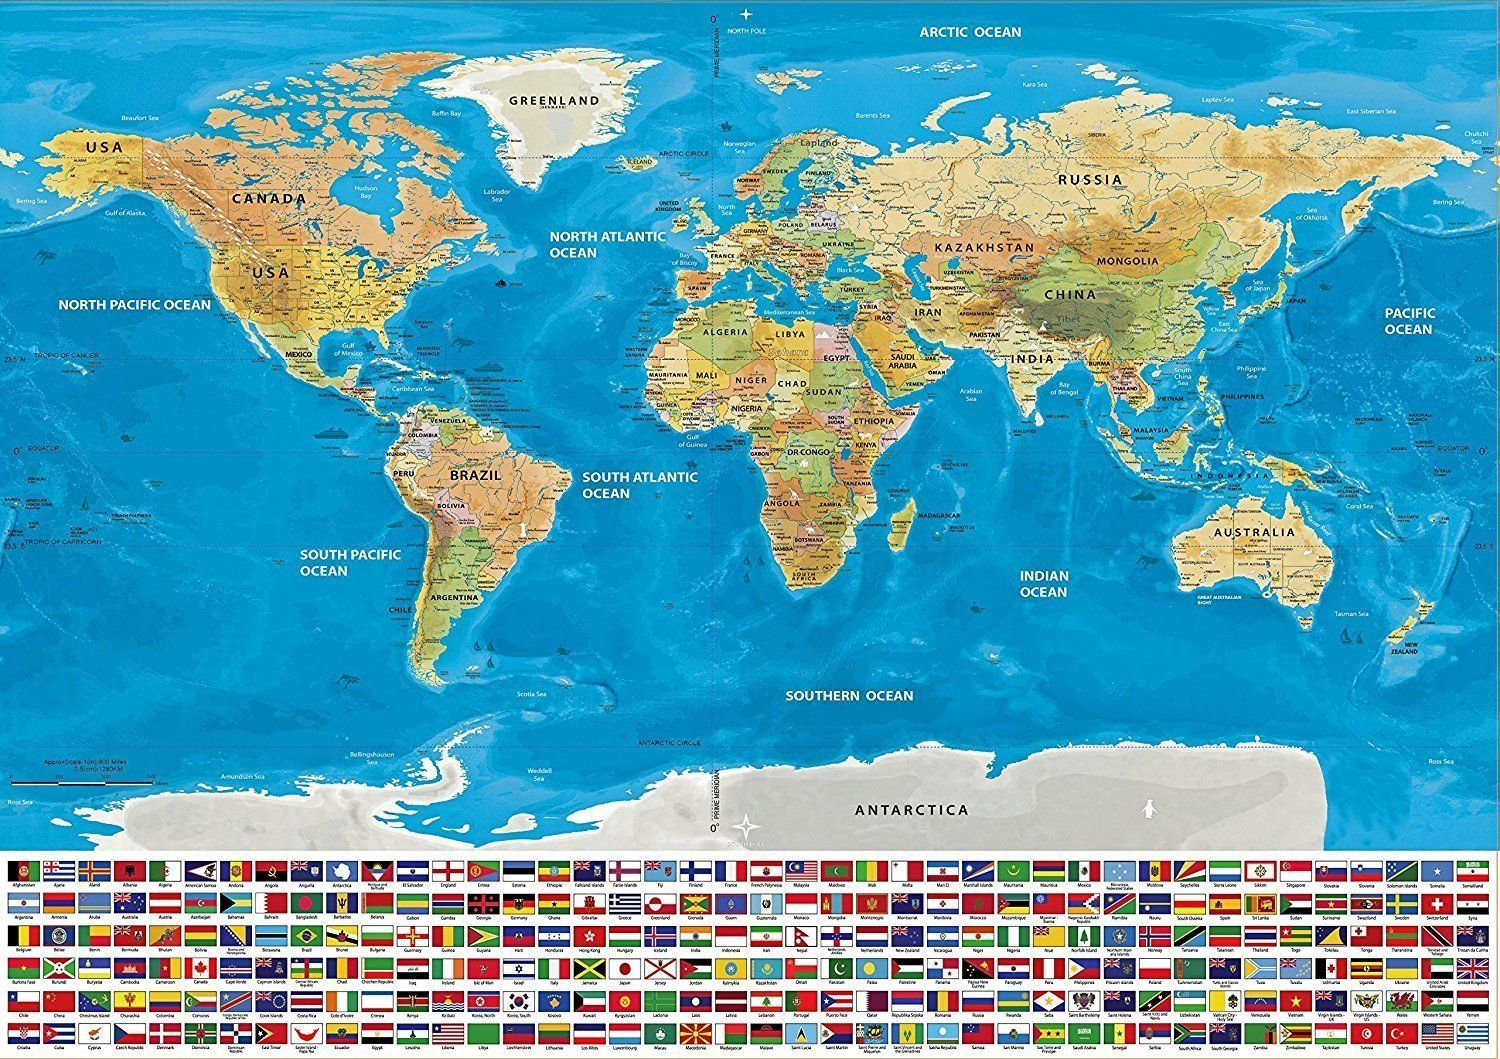 Track your travels scratch off world map poster with country flags scratch off world map poster with country flags gumiabroncs Choice Image